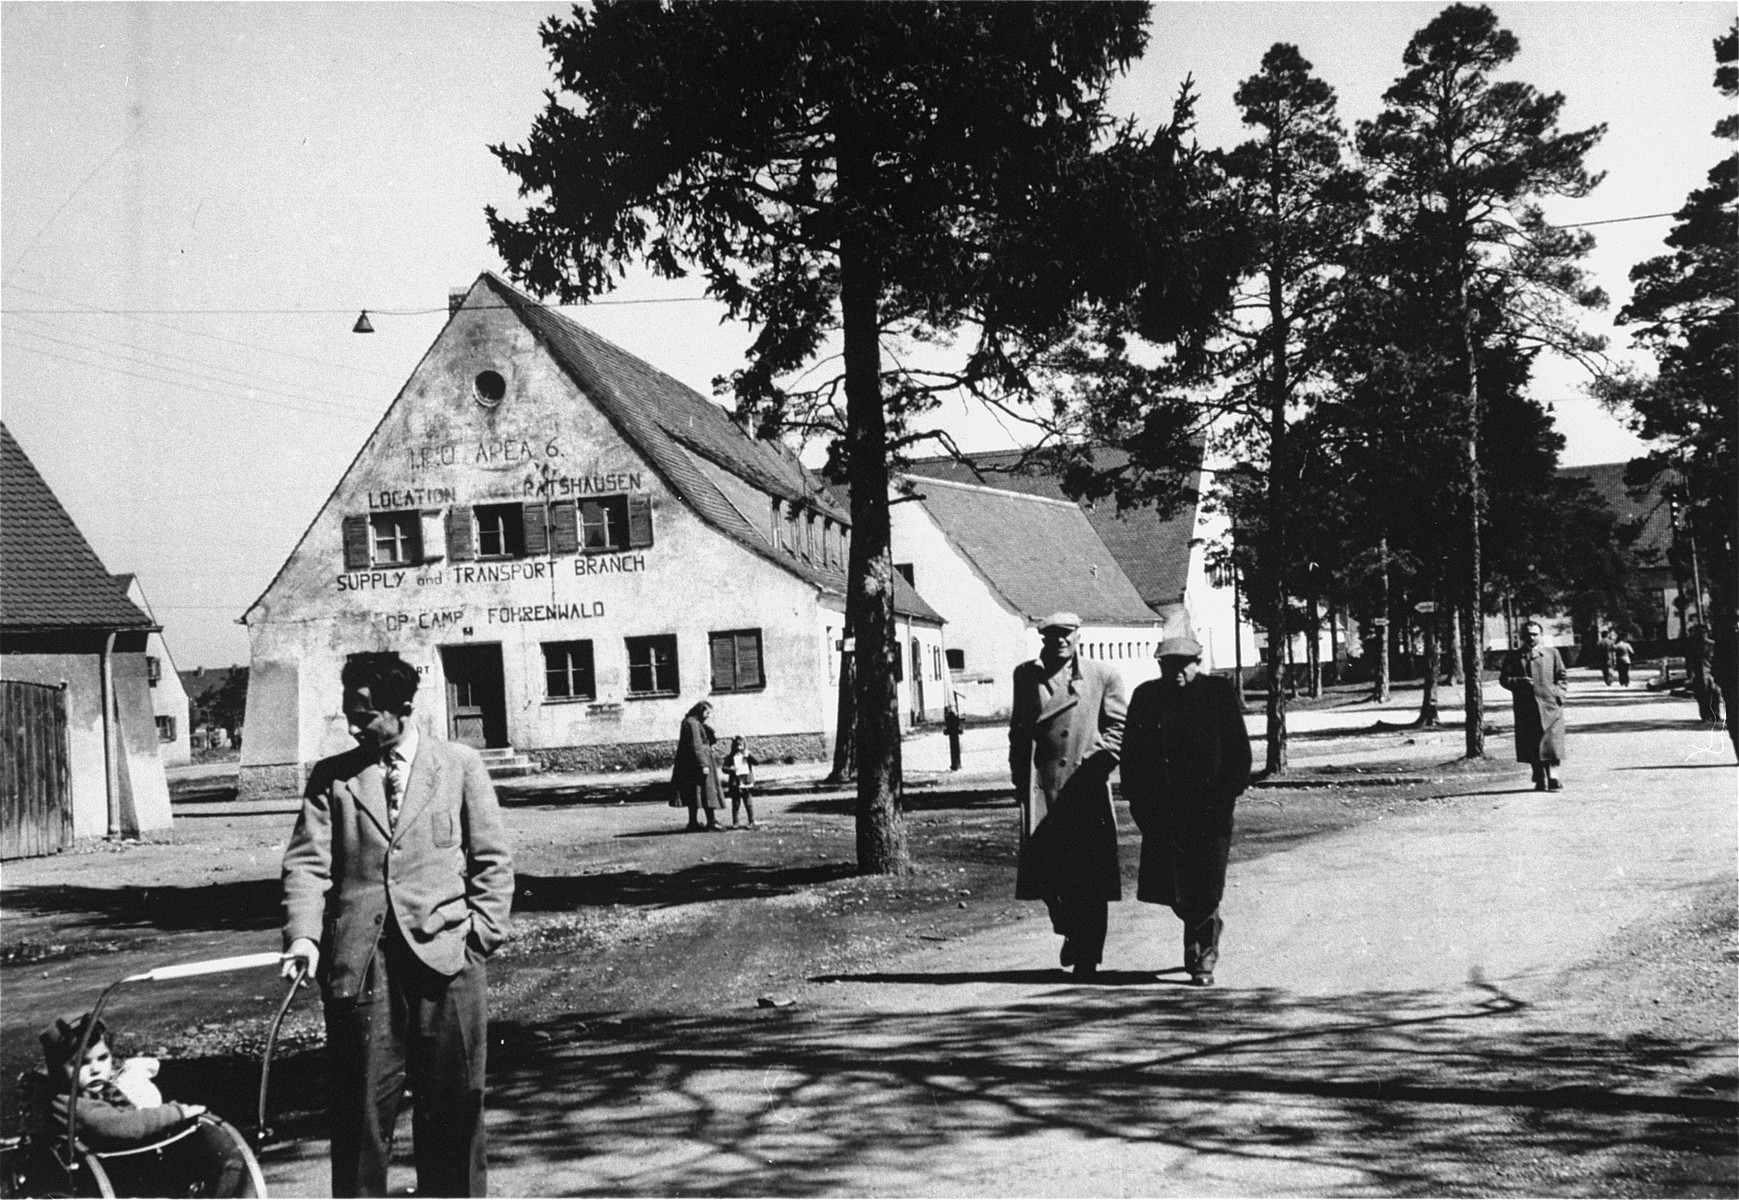 Street scene in the Foehrenwald displaced persons' camp.